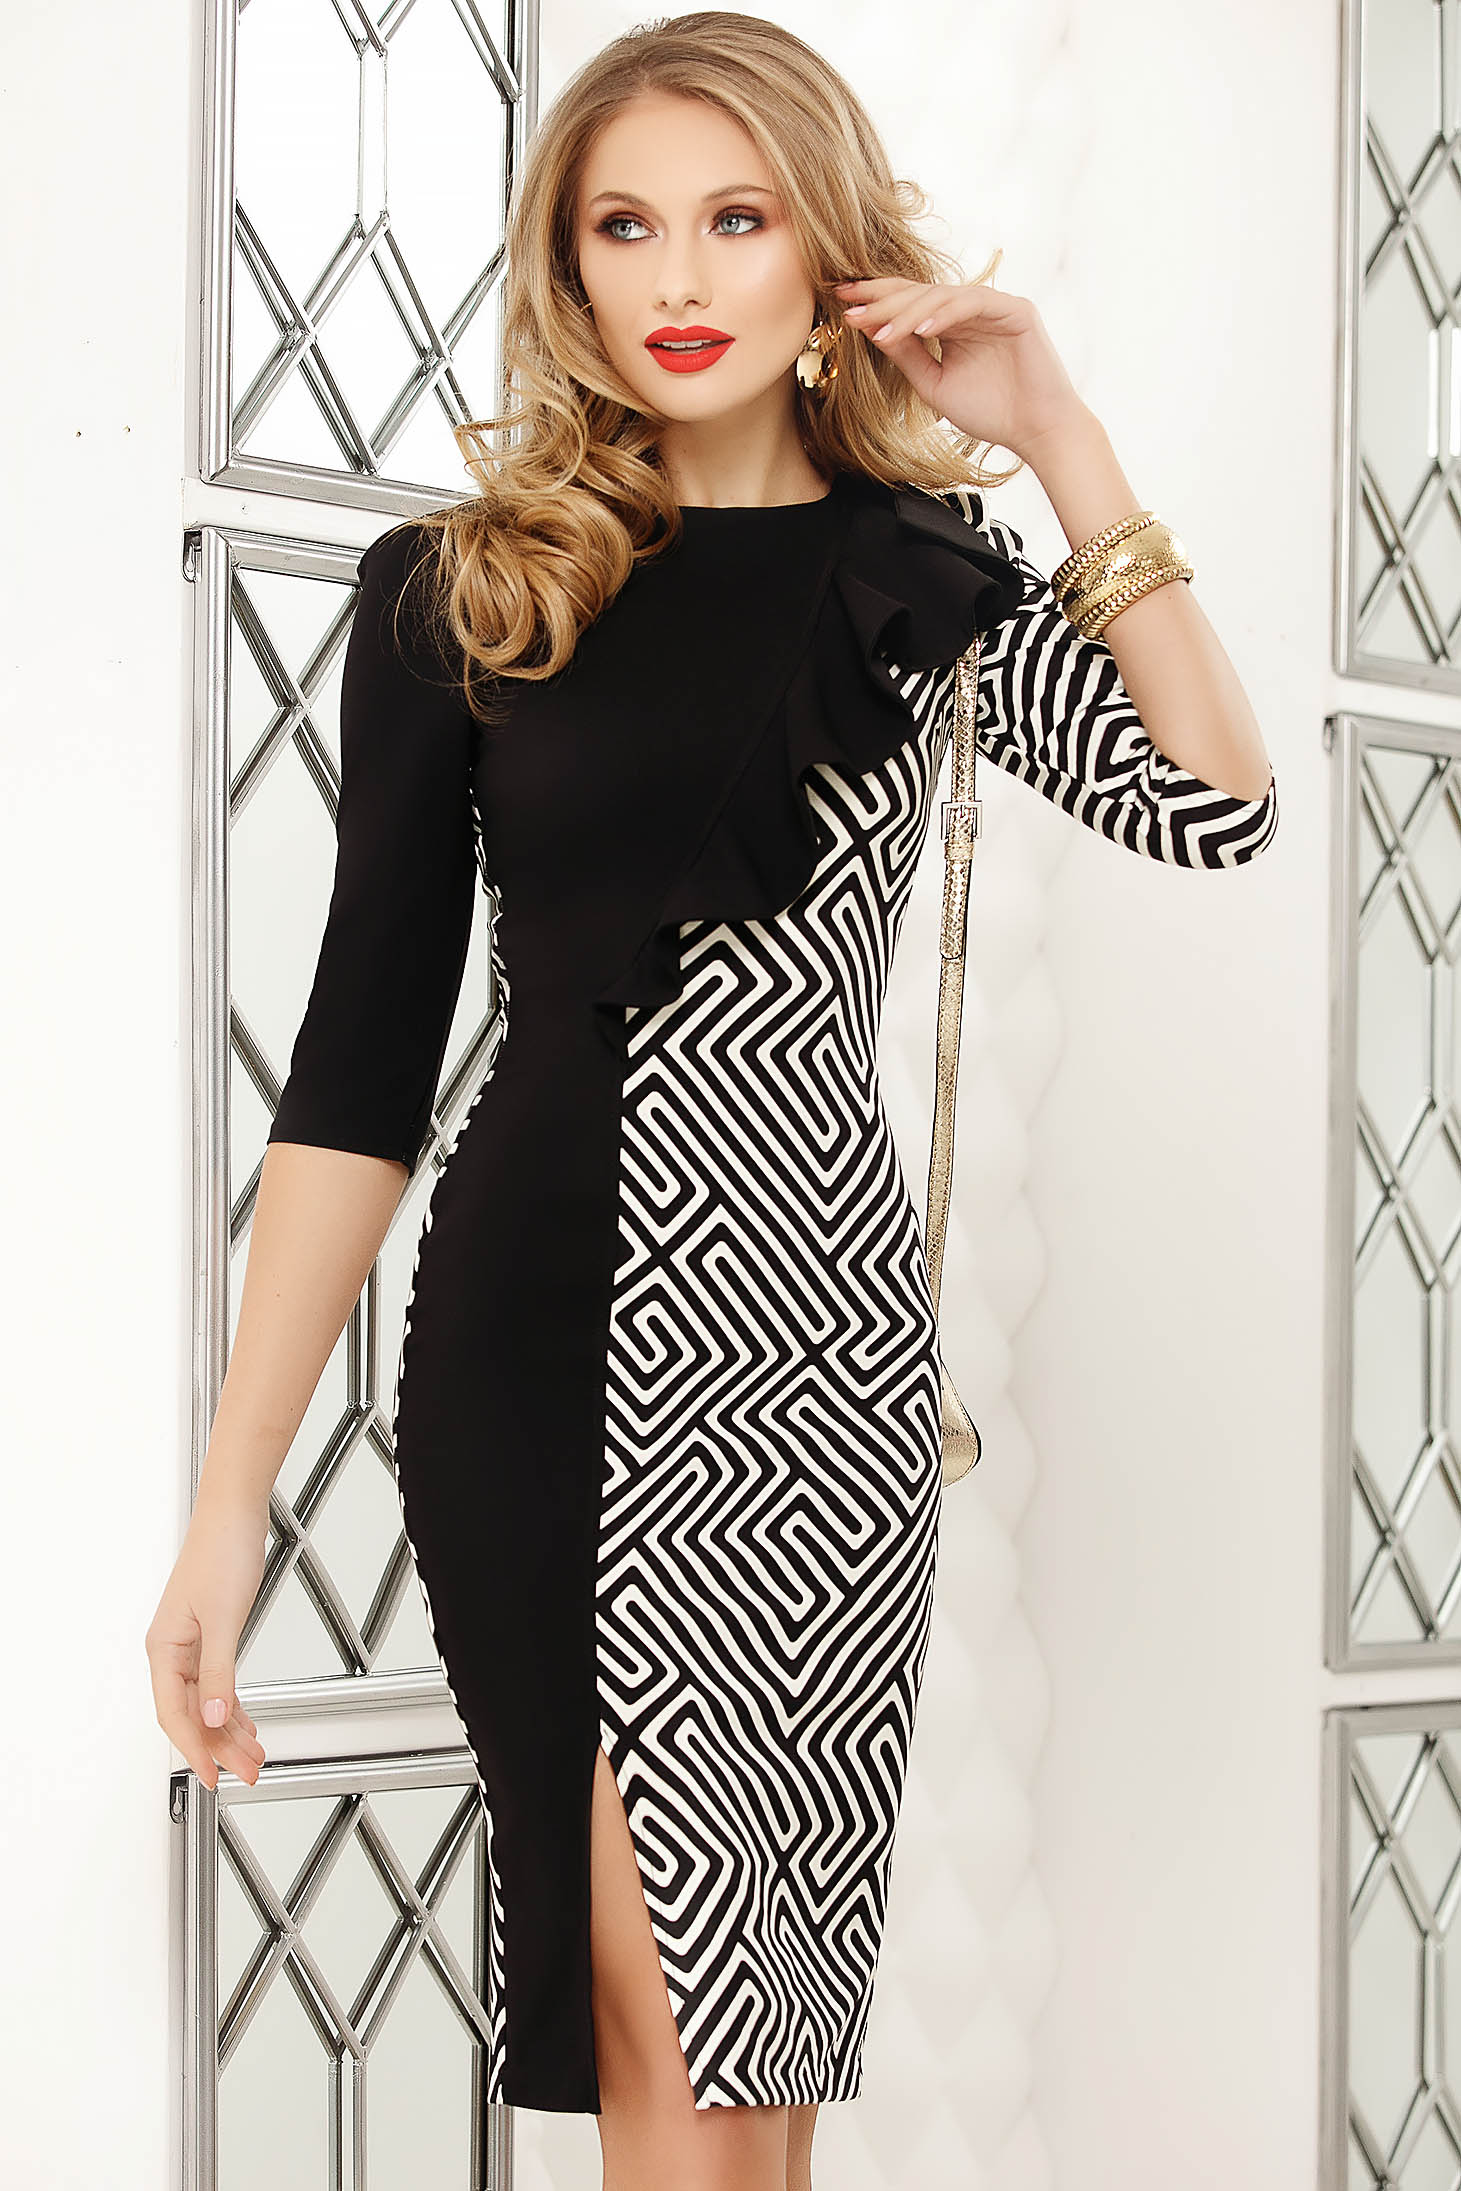 Black dress pencil midi slit with ruffles on the chest office with graphic details